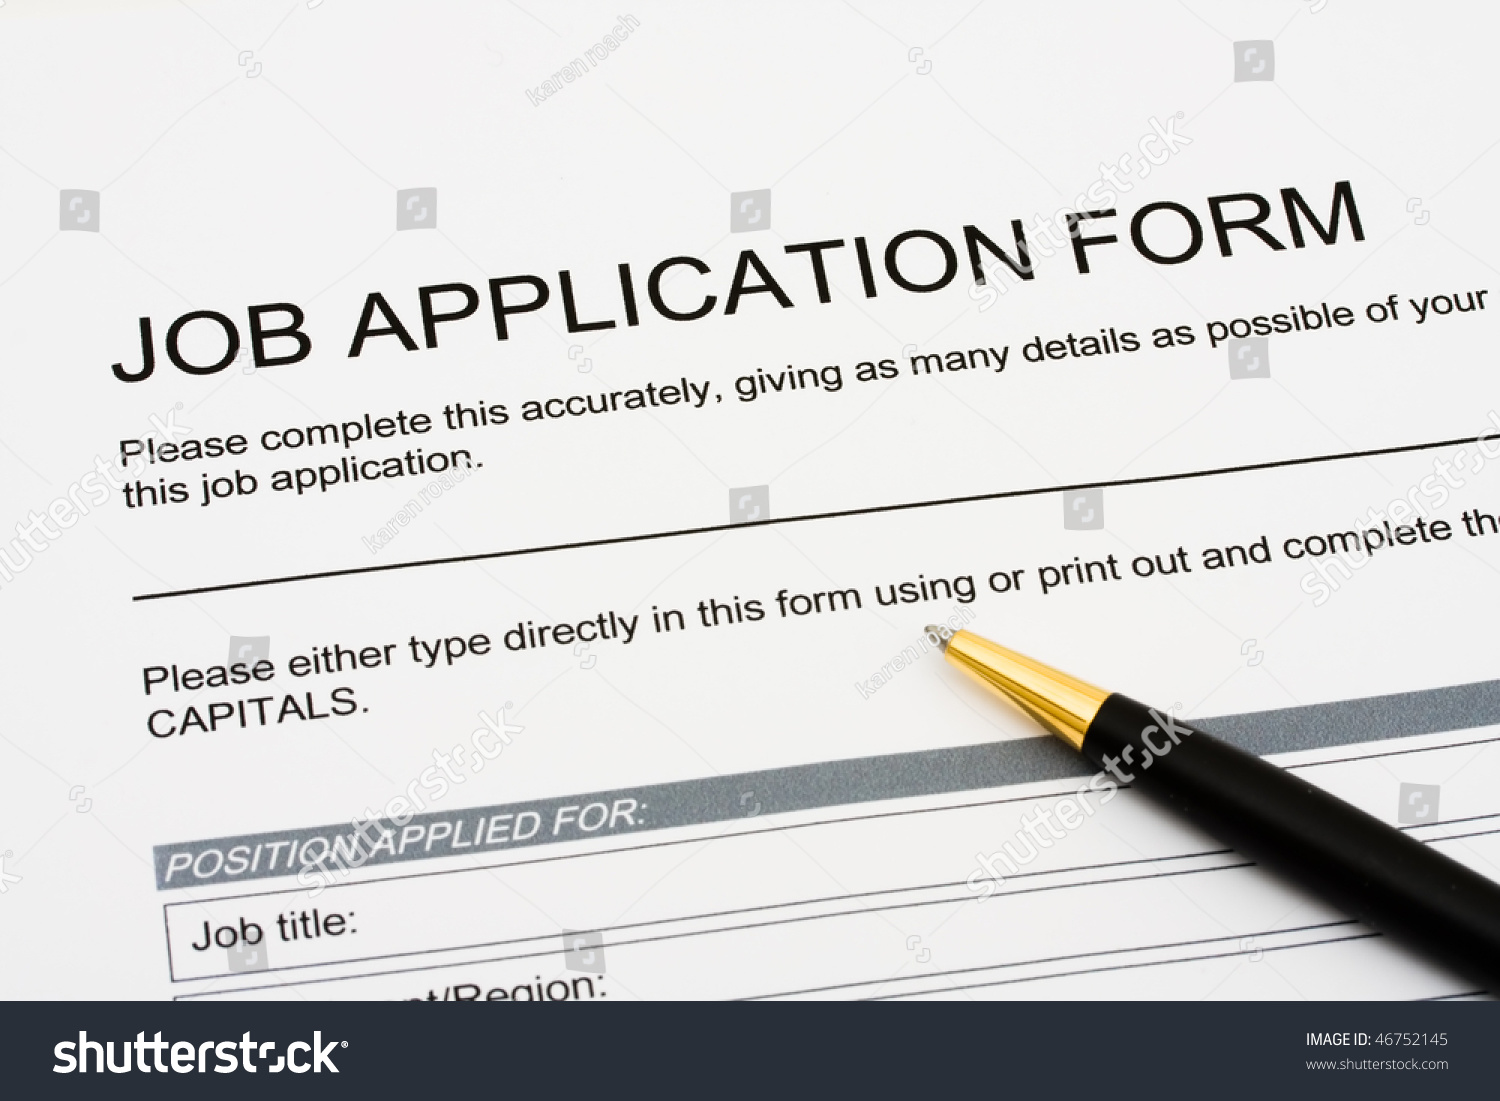 Job Application Jobs Sitting Pen Applying Stock Photo (Royalty Free ...